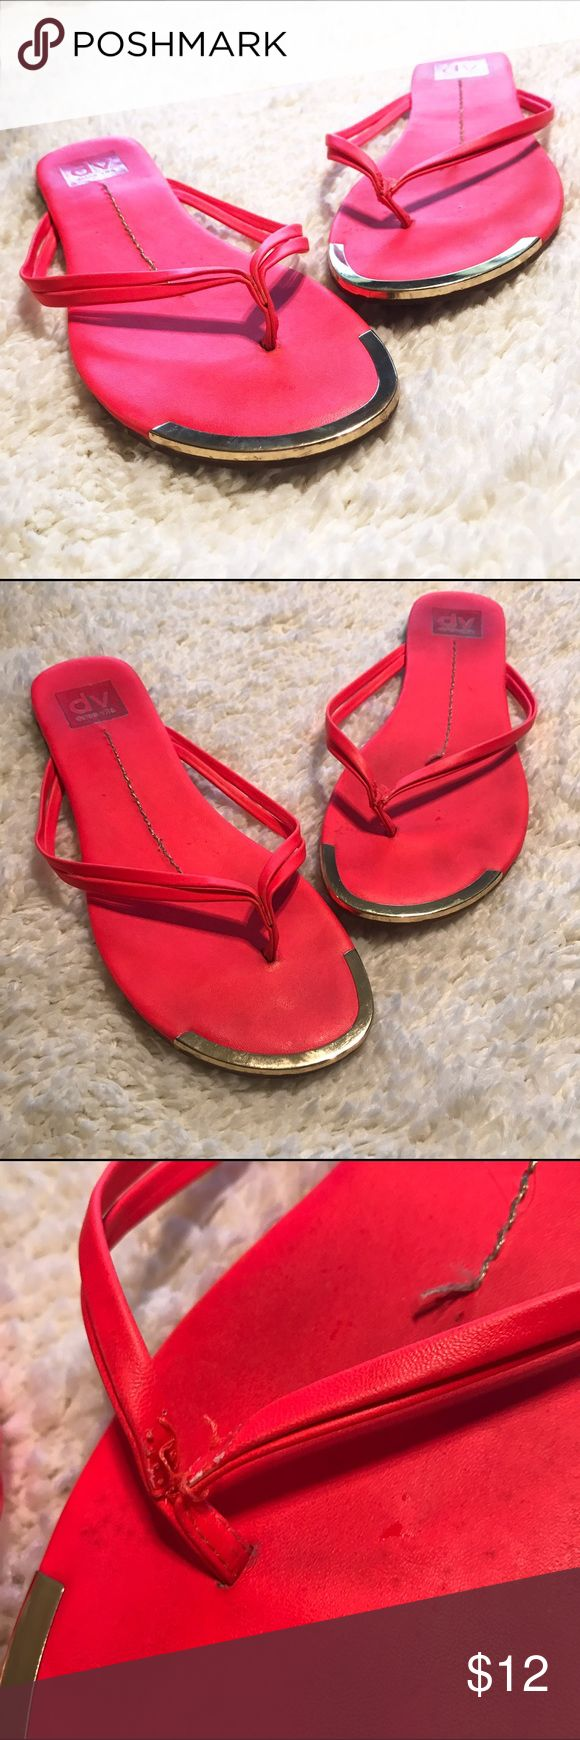 Dolce Vita Flip Flops with Gold Tip Red flip flops by Dolce Vita worn medal gold tips. Well loved but the foot beds and soles just have marks from wear, not actually scratches or anything. One of the toe separators is split as shown, I think it could easily be glued or can be worn as is. Feel free to ask any questions. Dolce Vita Shoes Sandals